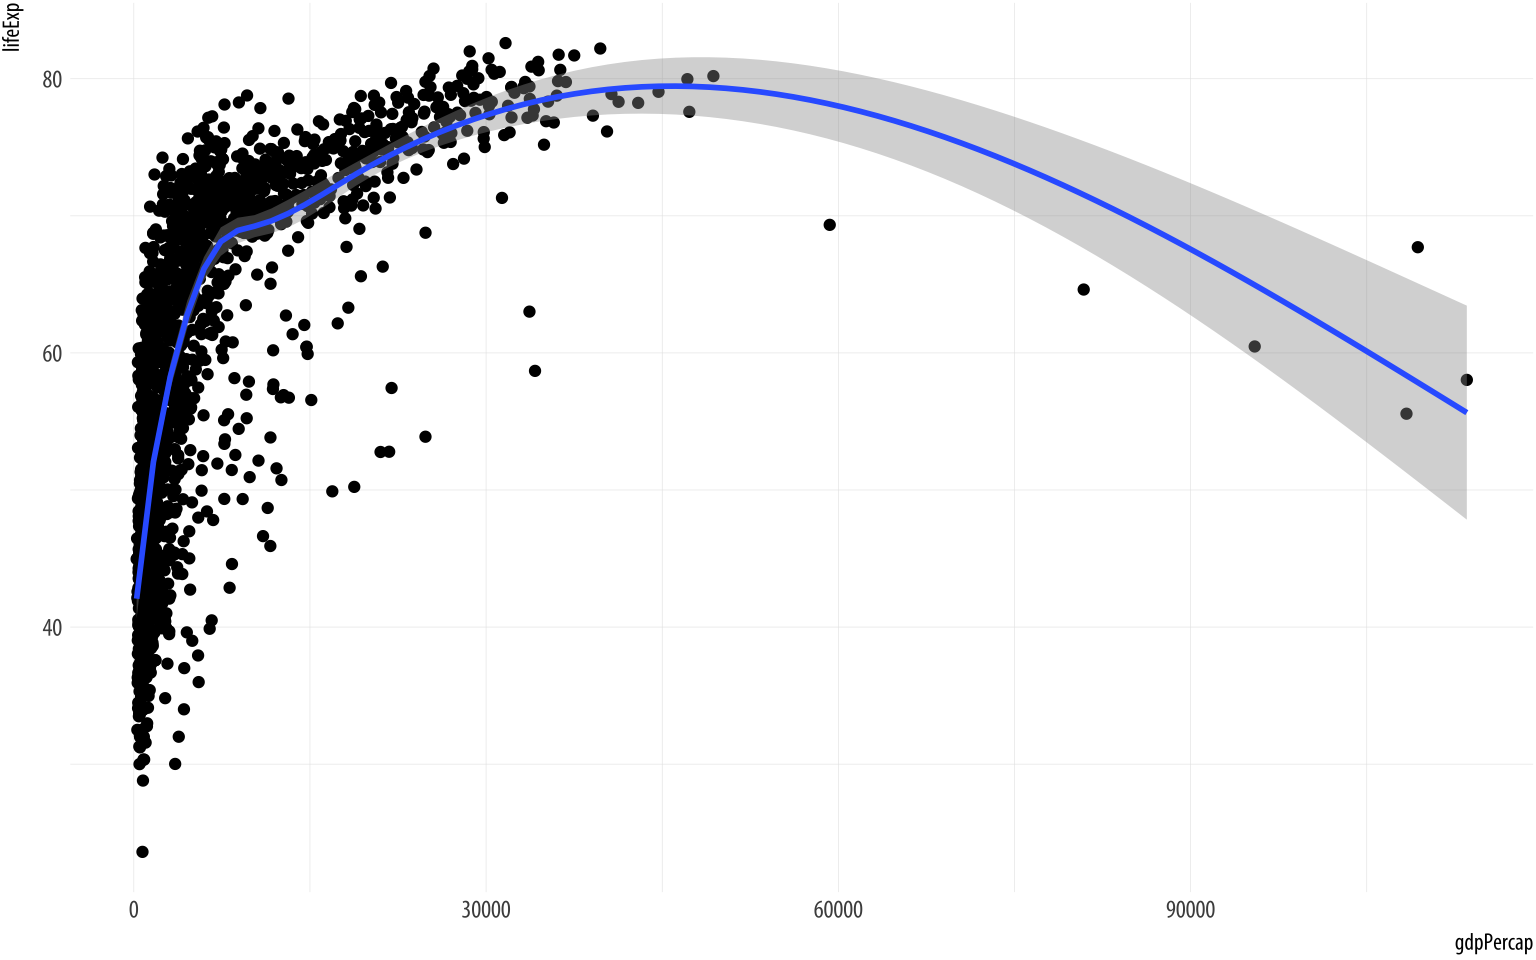 Life Expectancy vs GDP scatterplot, with a GAM smoother and a log scale on the x-axis.